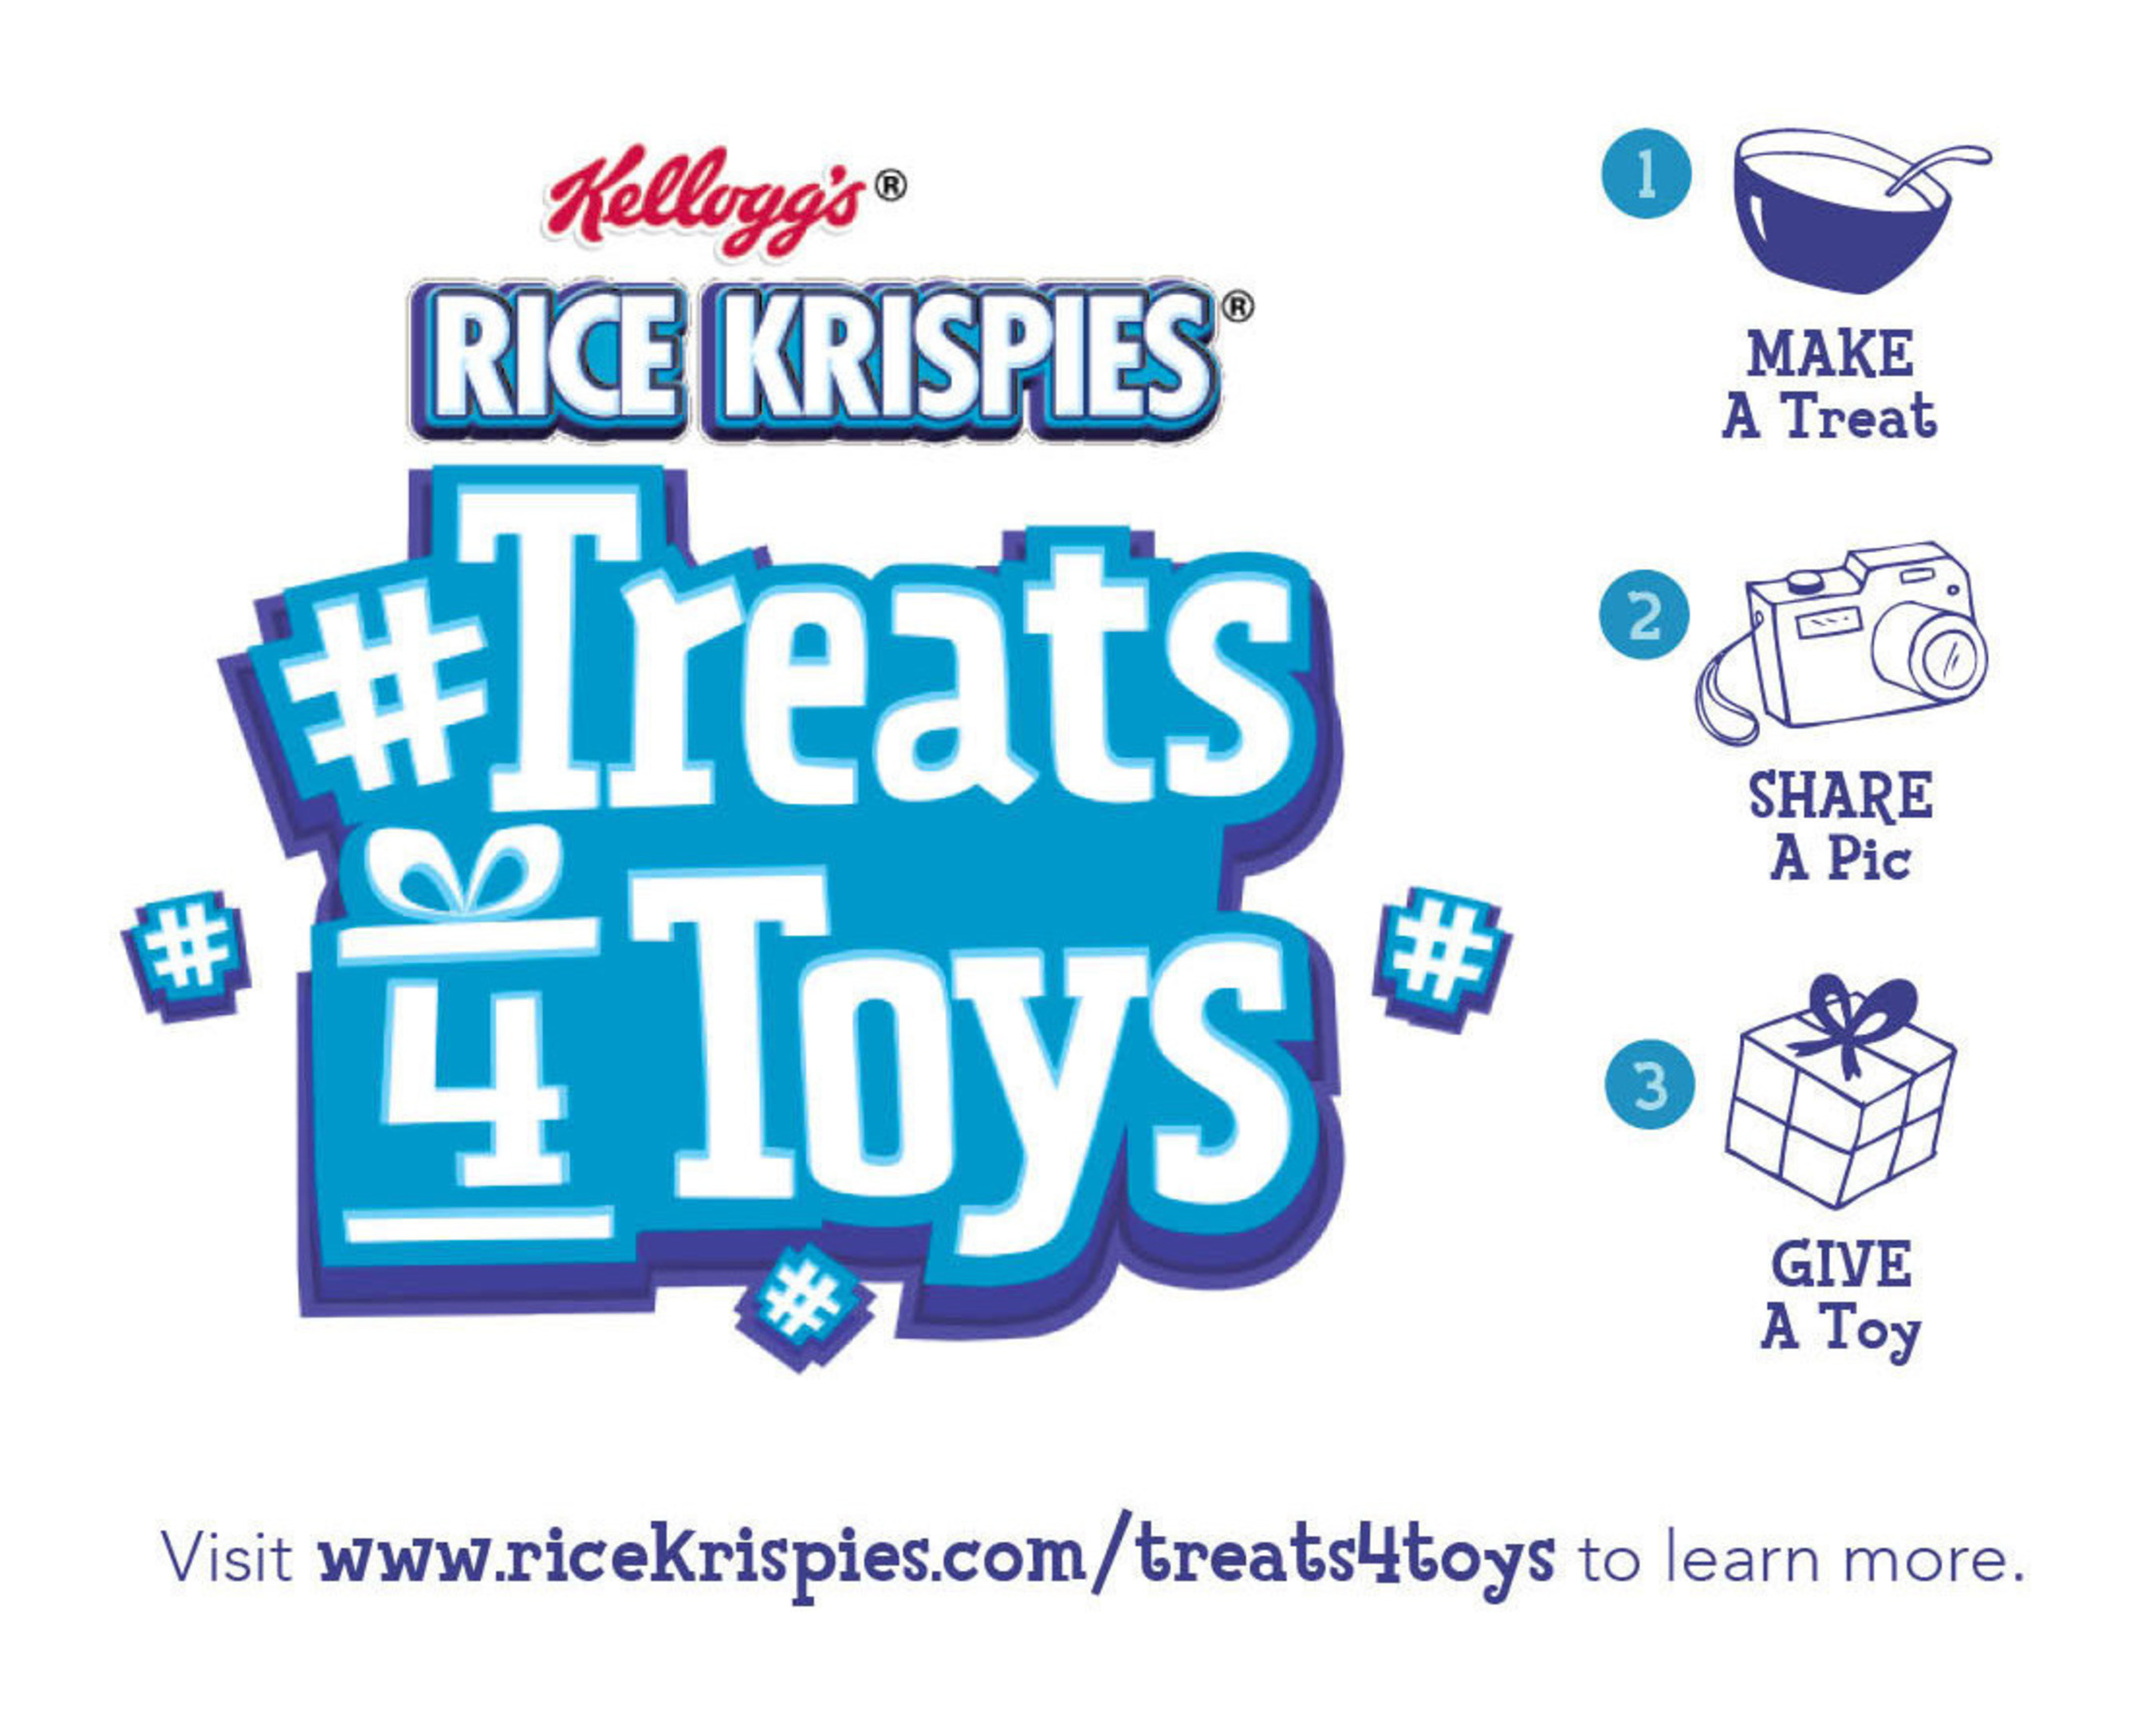 Share a photo of your Rice Krispies creation using #Treats4Toys, and Kellogg will donate a gift to Toys for Tots to help give a little joy to a child in need.